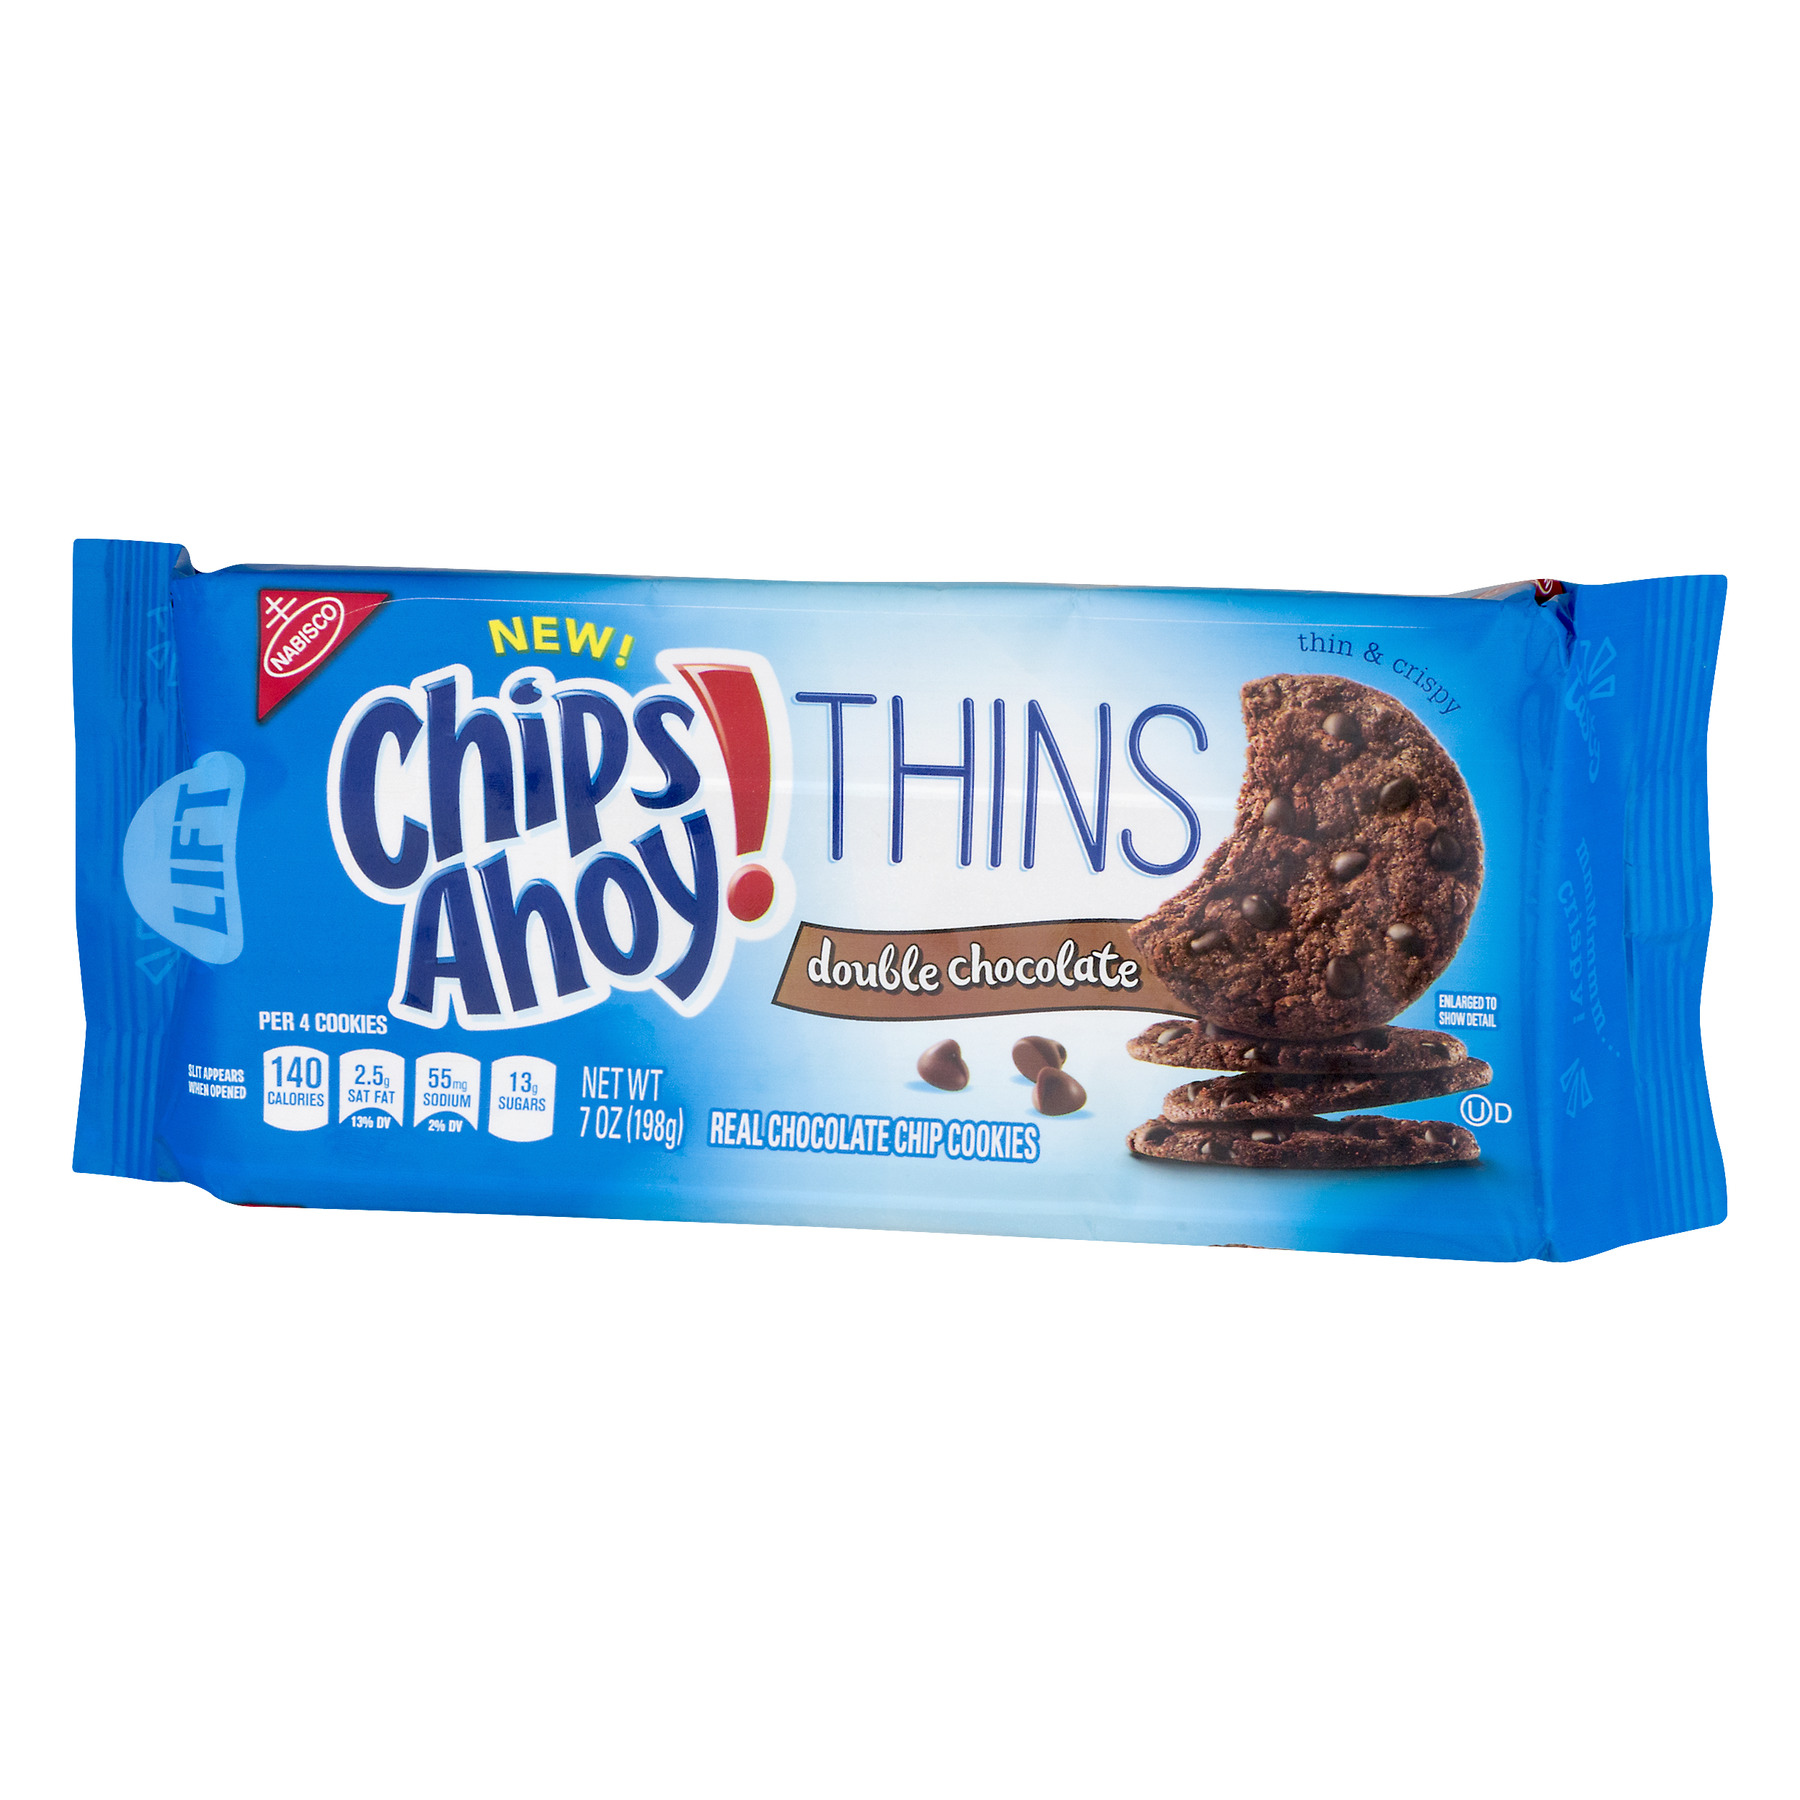 (3 Pack) Chips Ahoy!, Chips Ahoy! Thins Double Chocolate